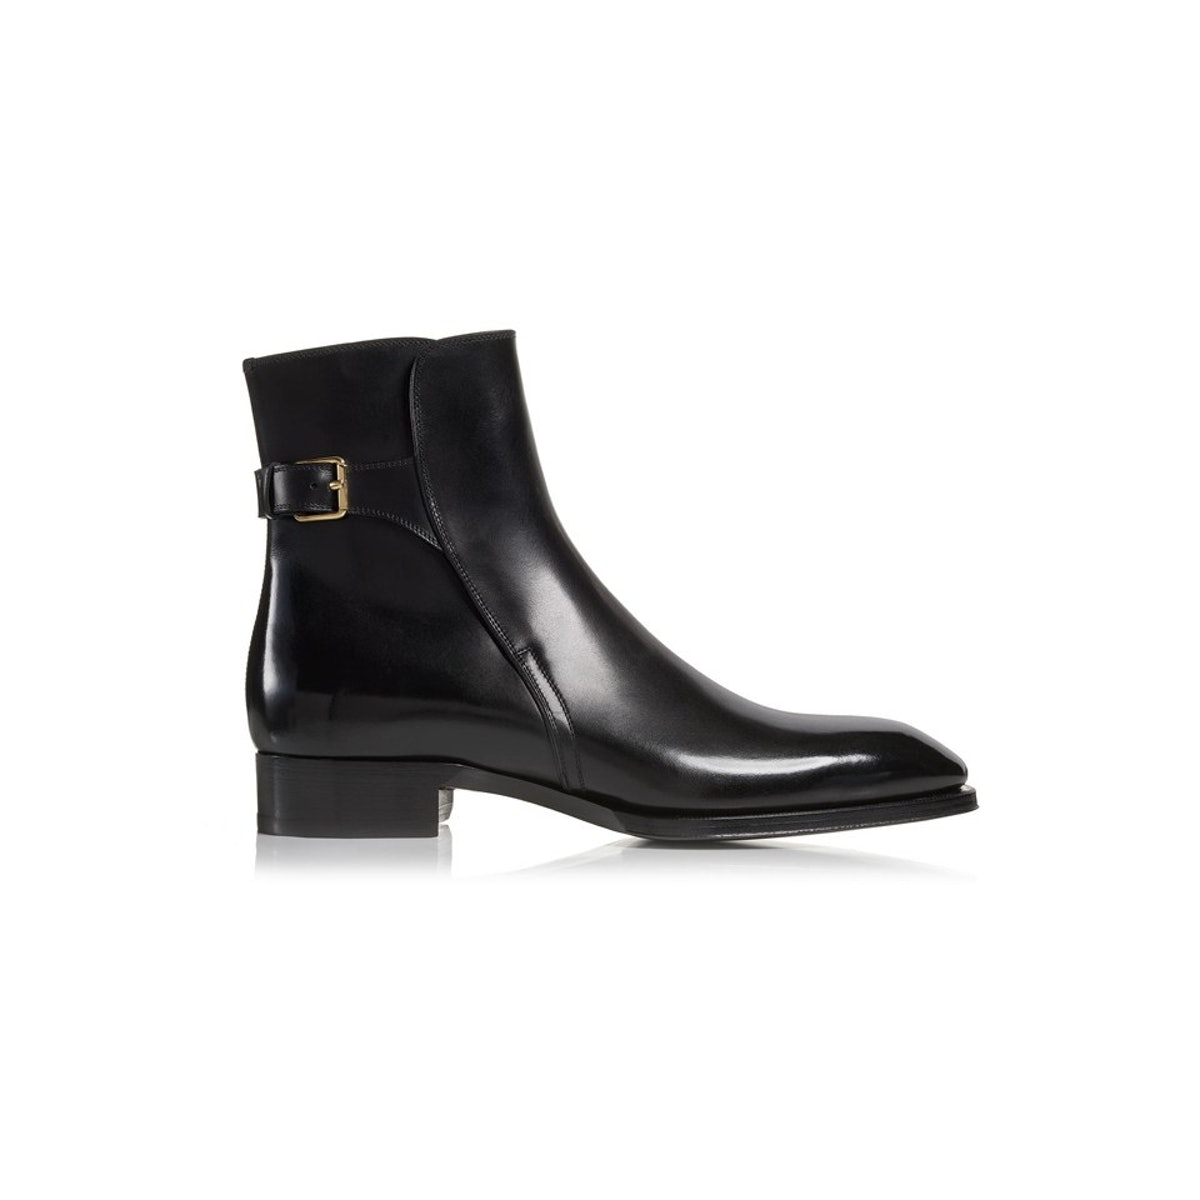 tom ford boots.jpg